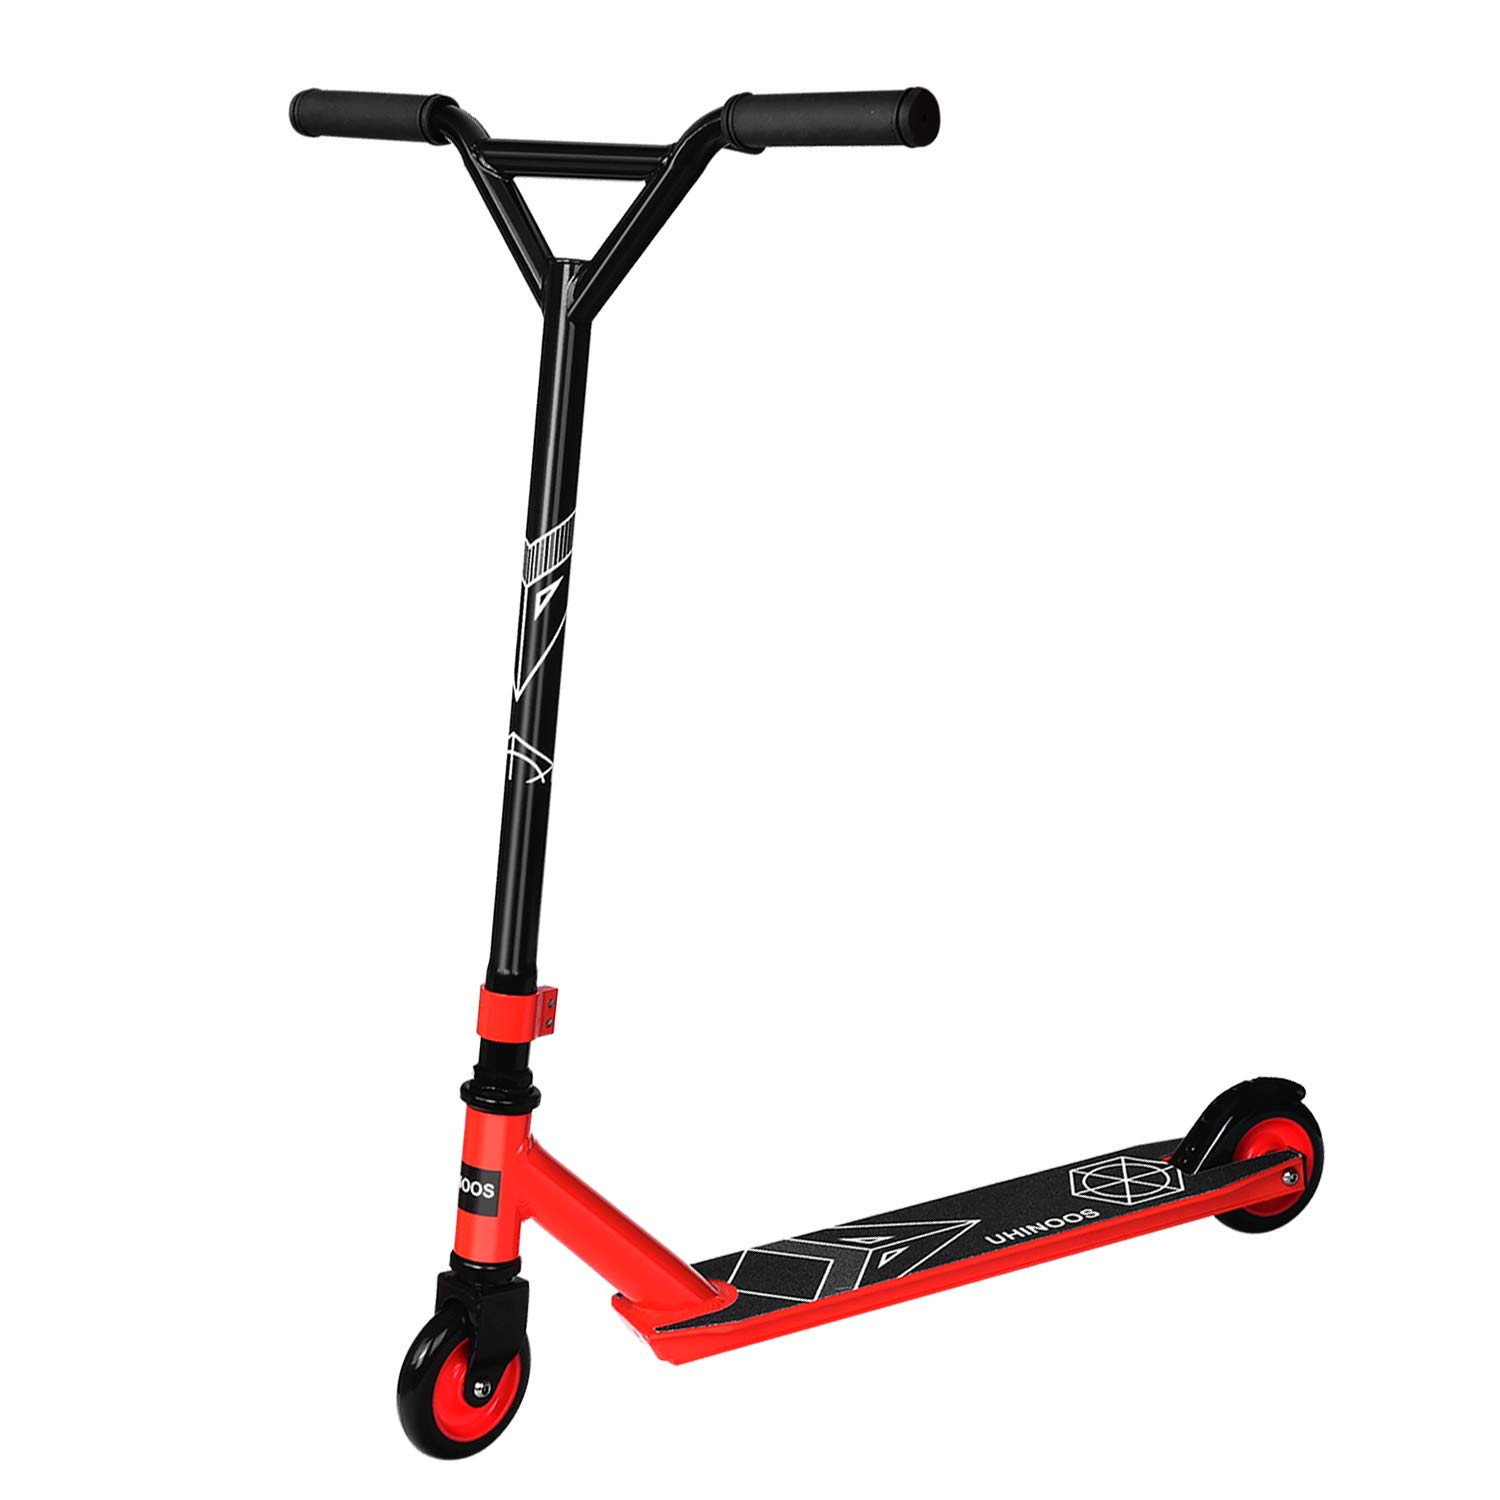 Amazon.com: UHINOOS Stunt Scooter Pro Scooters para ...